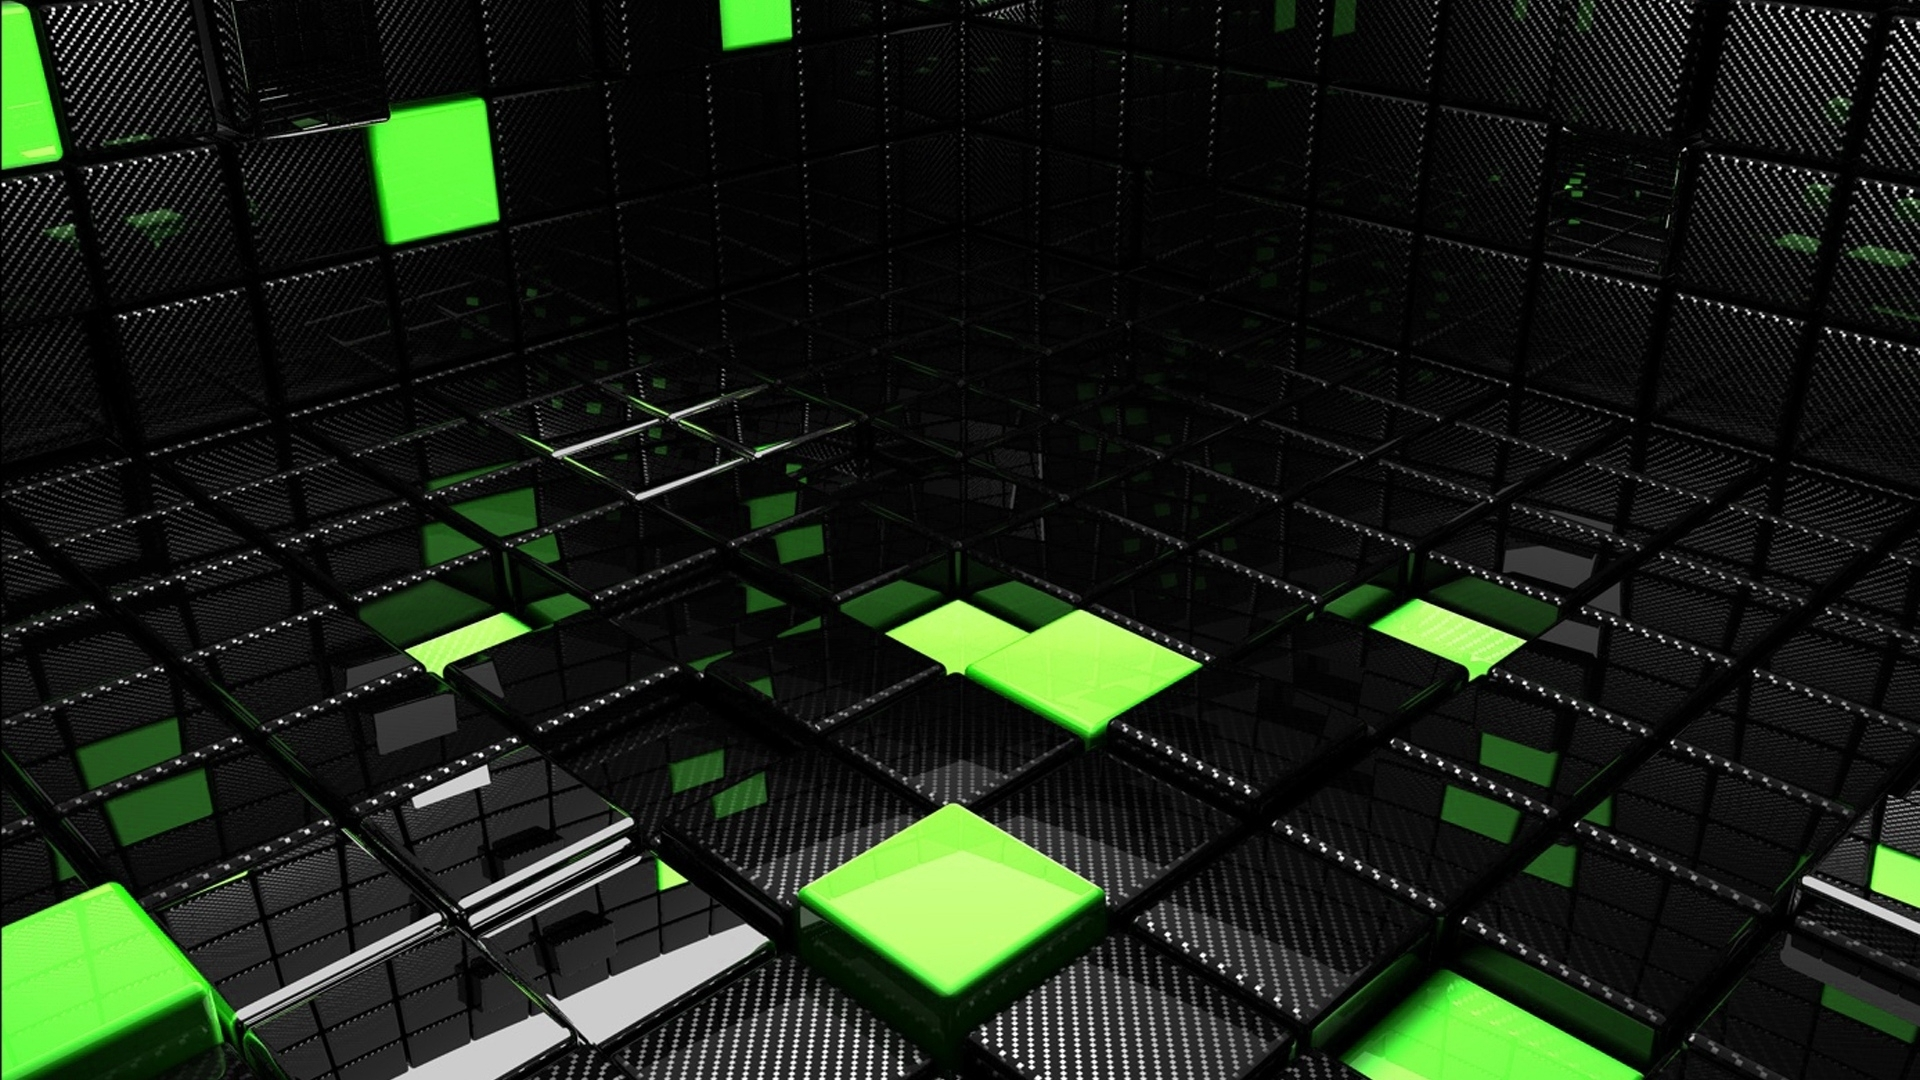 download wallpaper 1920x1080 cube, square, green, black, space full